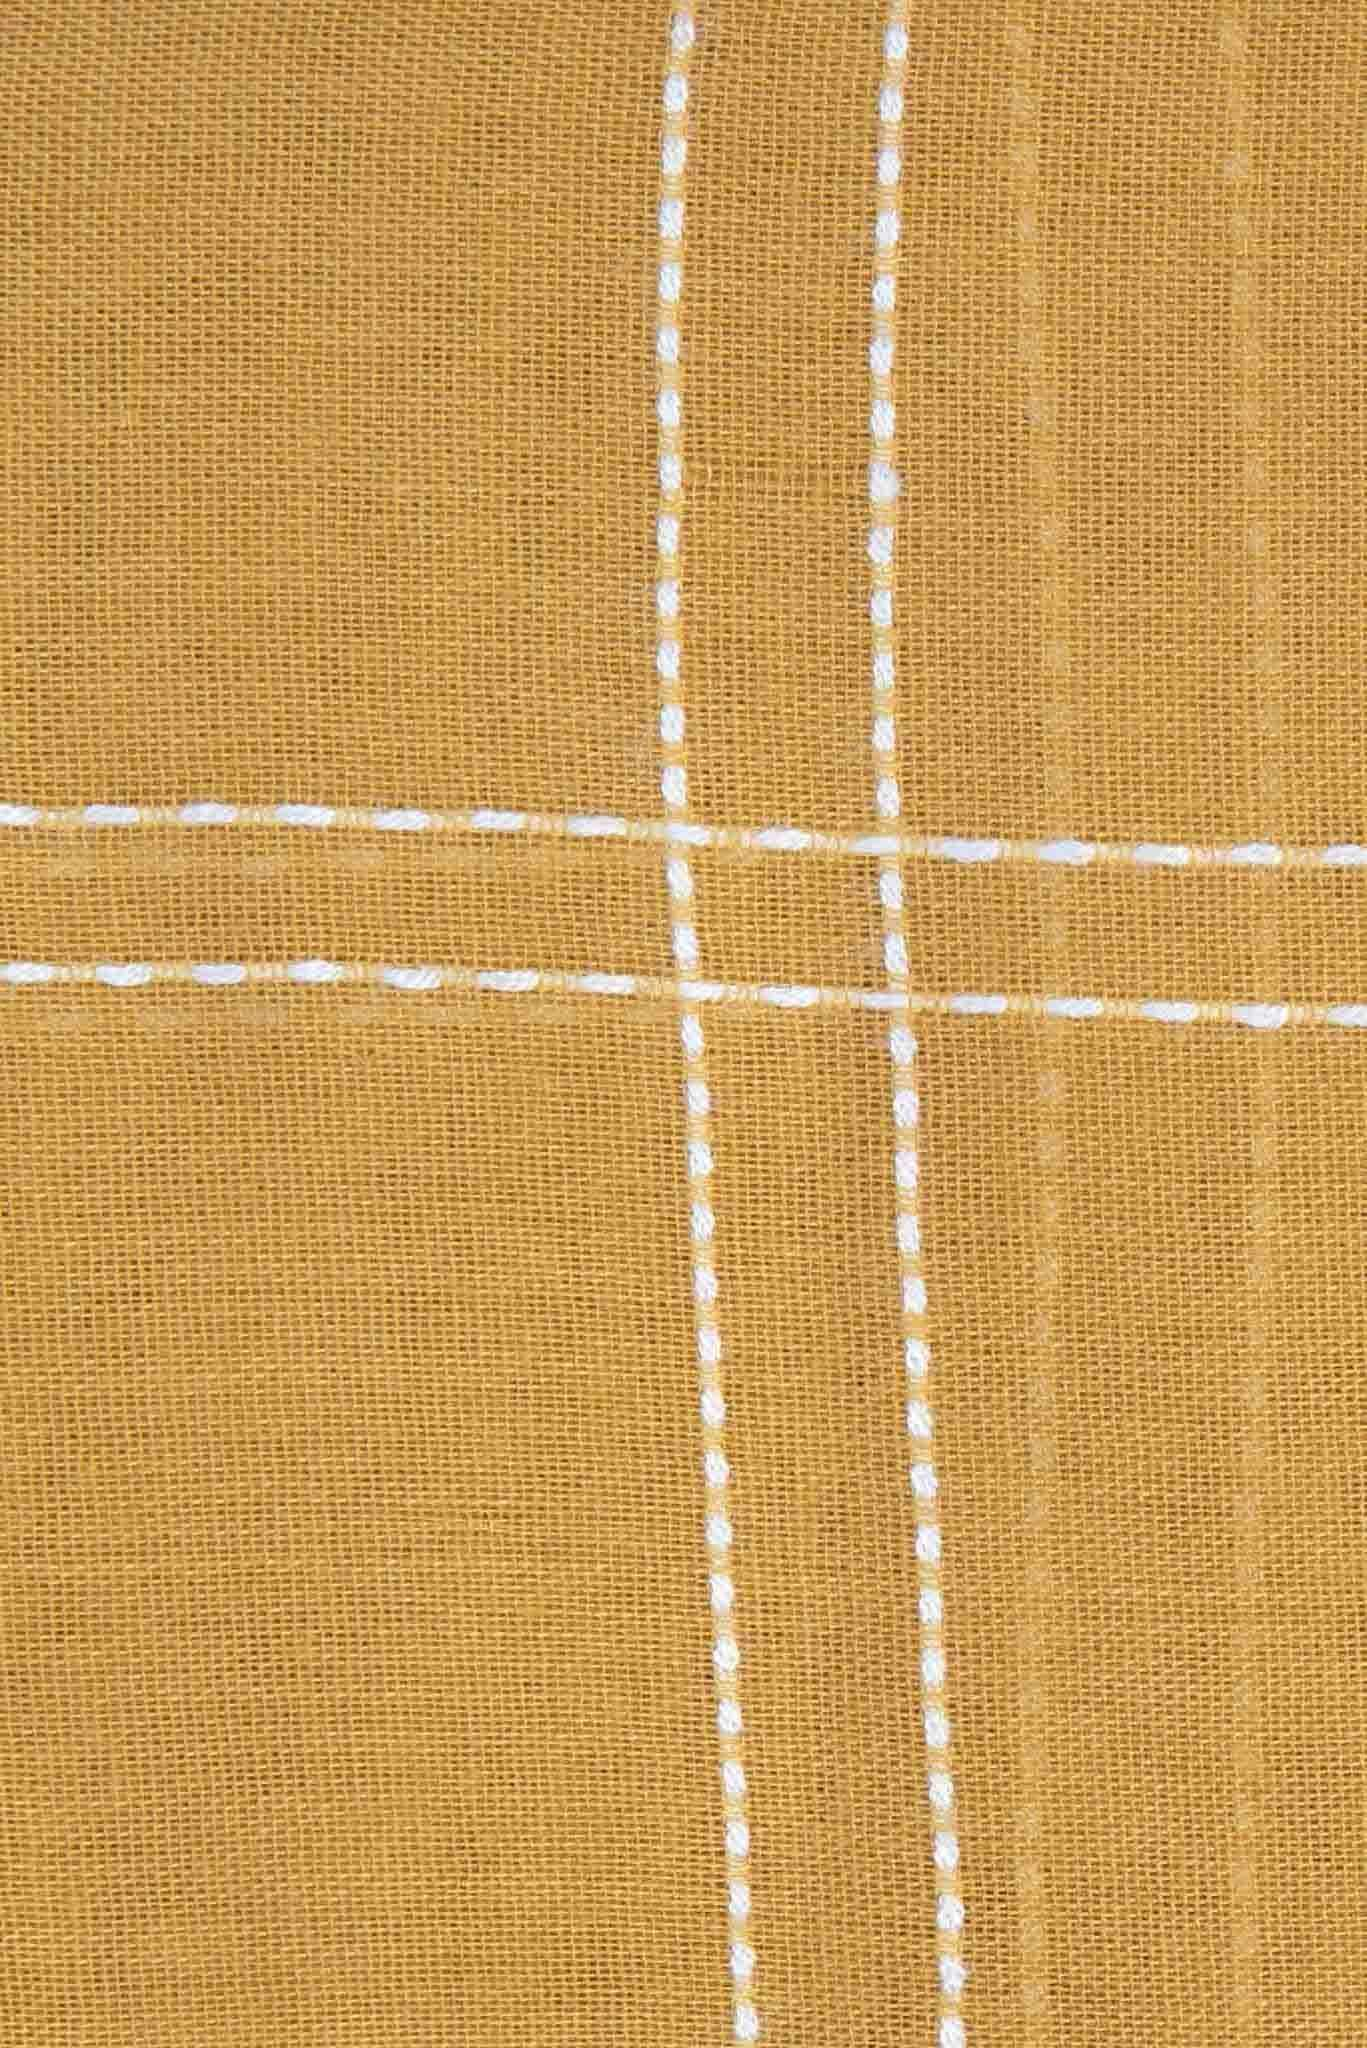 Striped Scarf - Mustard | Raw Orange